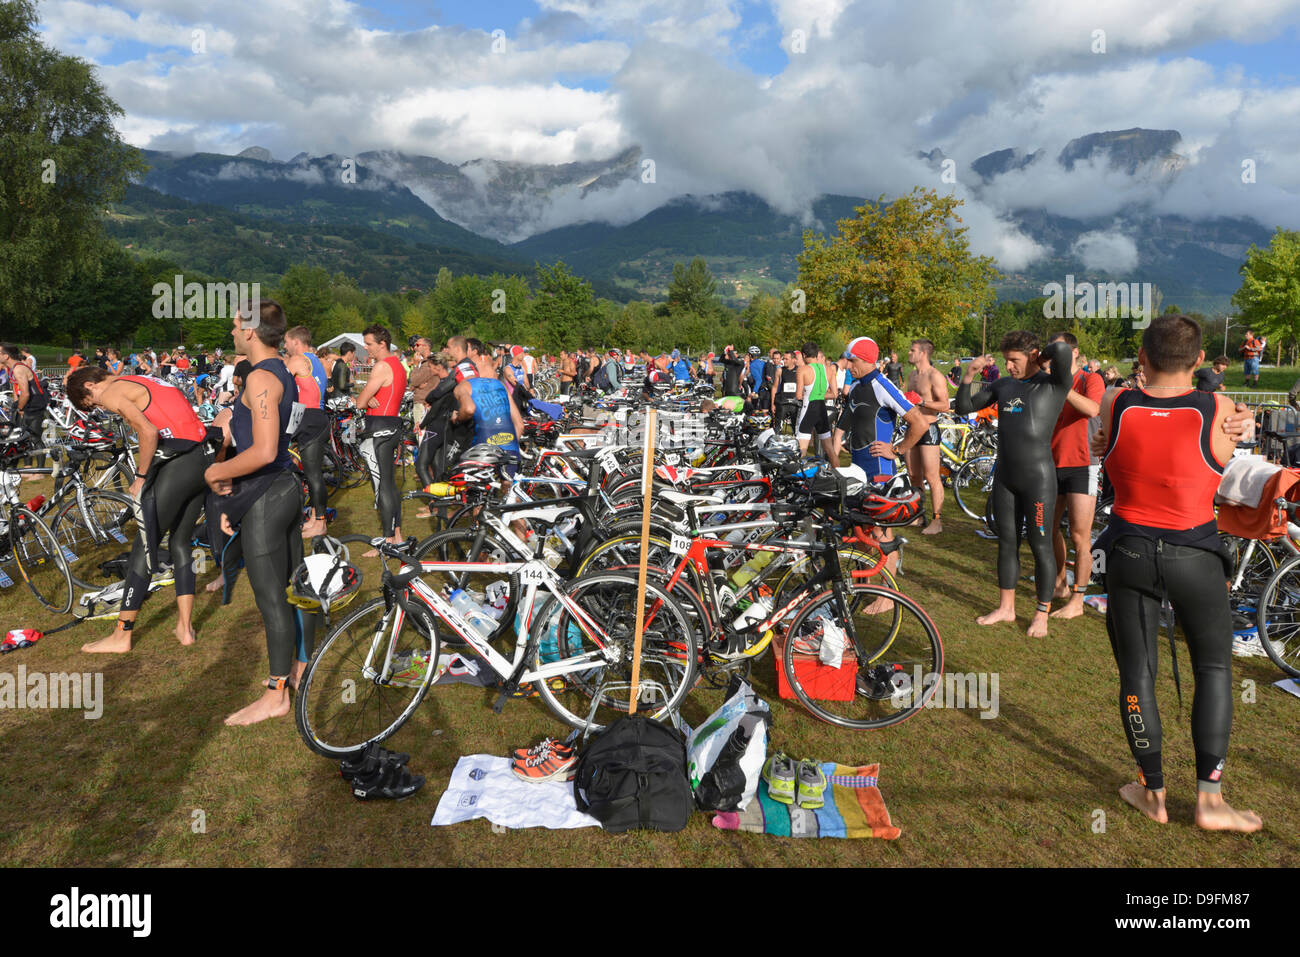 Changeover station, Passy Triathlon, Passy, Haute-Savoie, French Alps, France - Stock Image